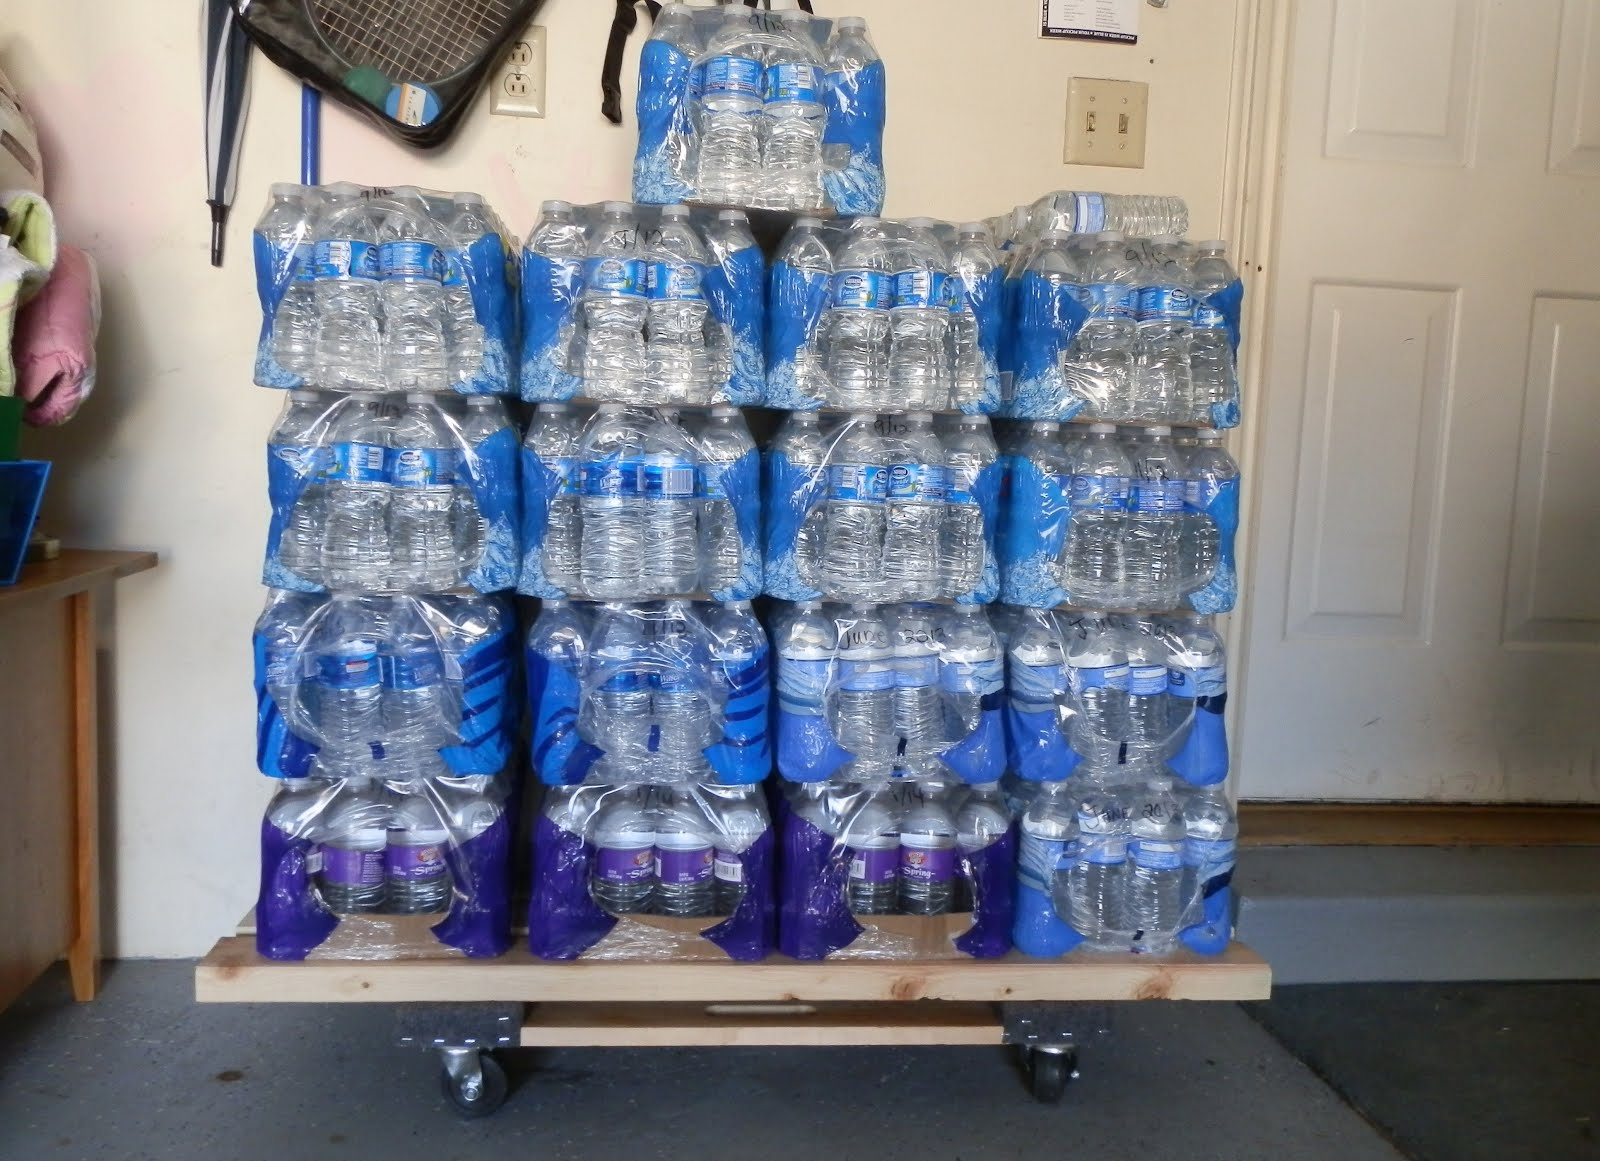 & Prepared LDS Family: Store Bottled Water Off The Floor on A Dolly